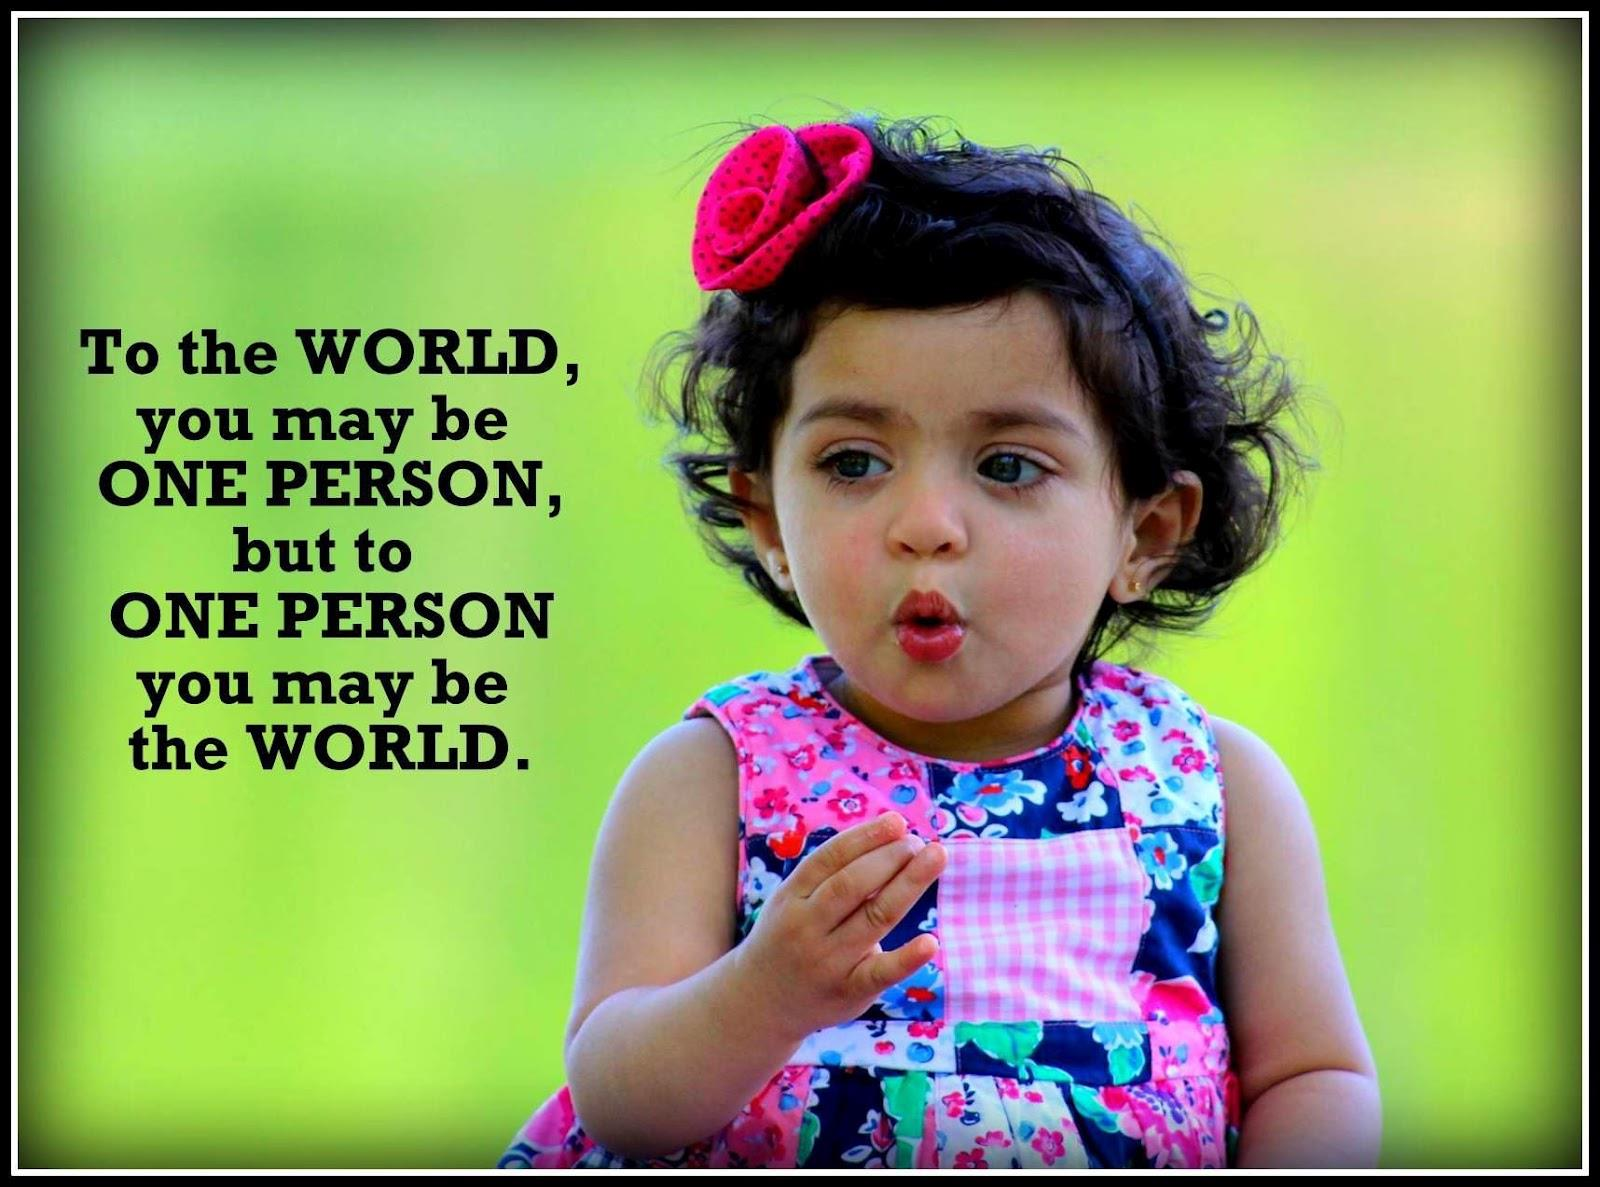 Nice Quotes For Baby Girl: To The World You May Be One Person But To One Person You